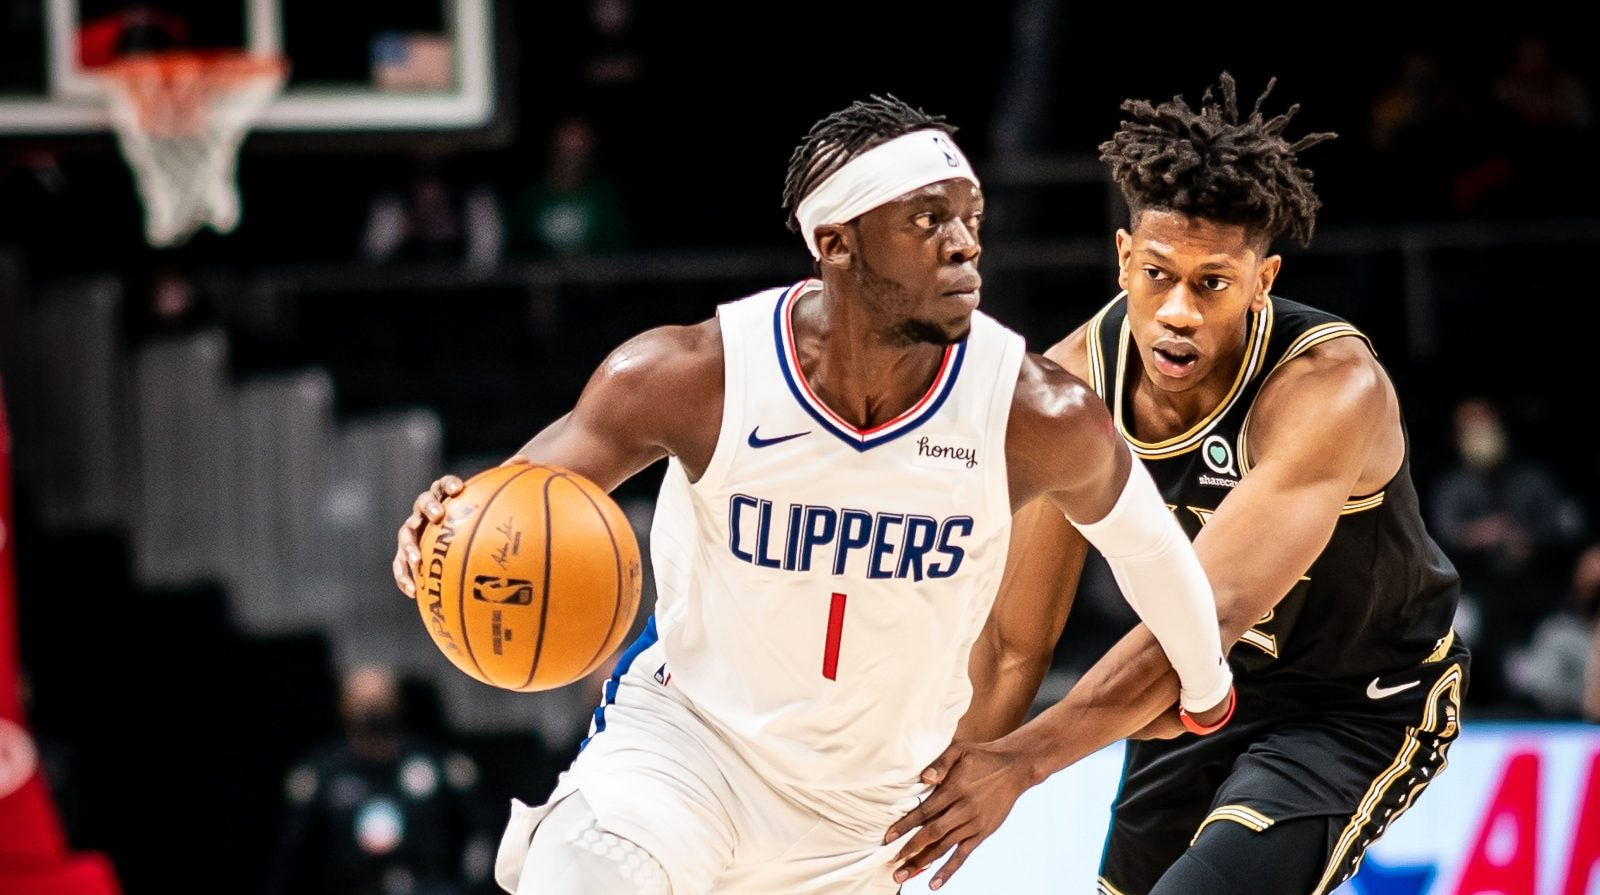 Clippers vs Hawks Player Grades